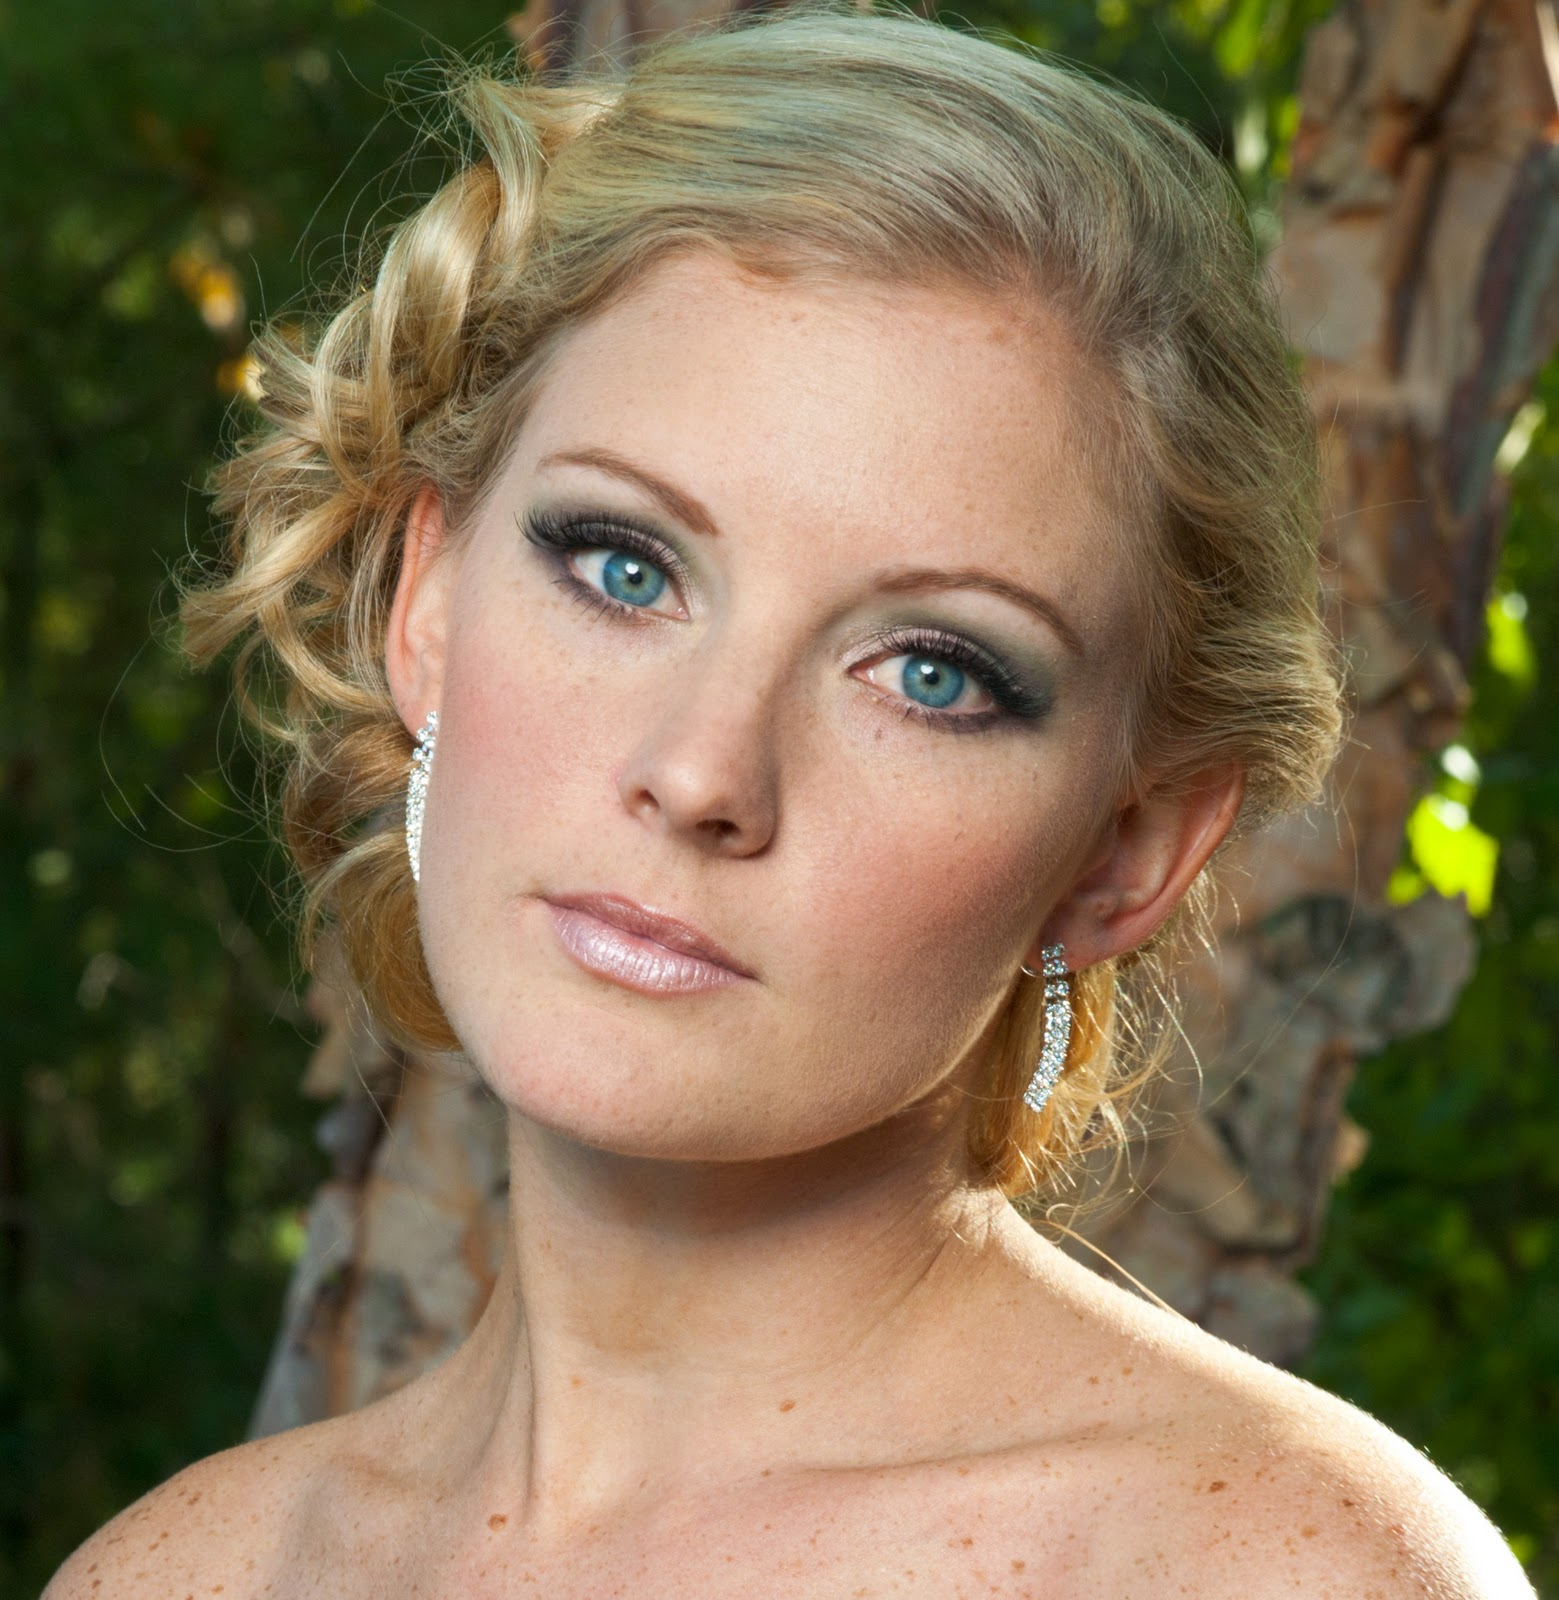 Wedding Makeup For Green Eyes And Brown Hair : Makeup Tips For Blue Eyes And Blonde Hair And Fair Skin ...